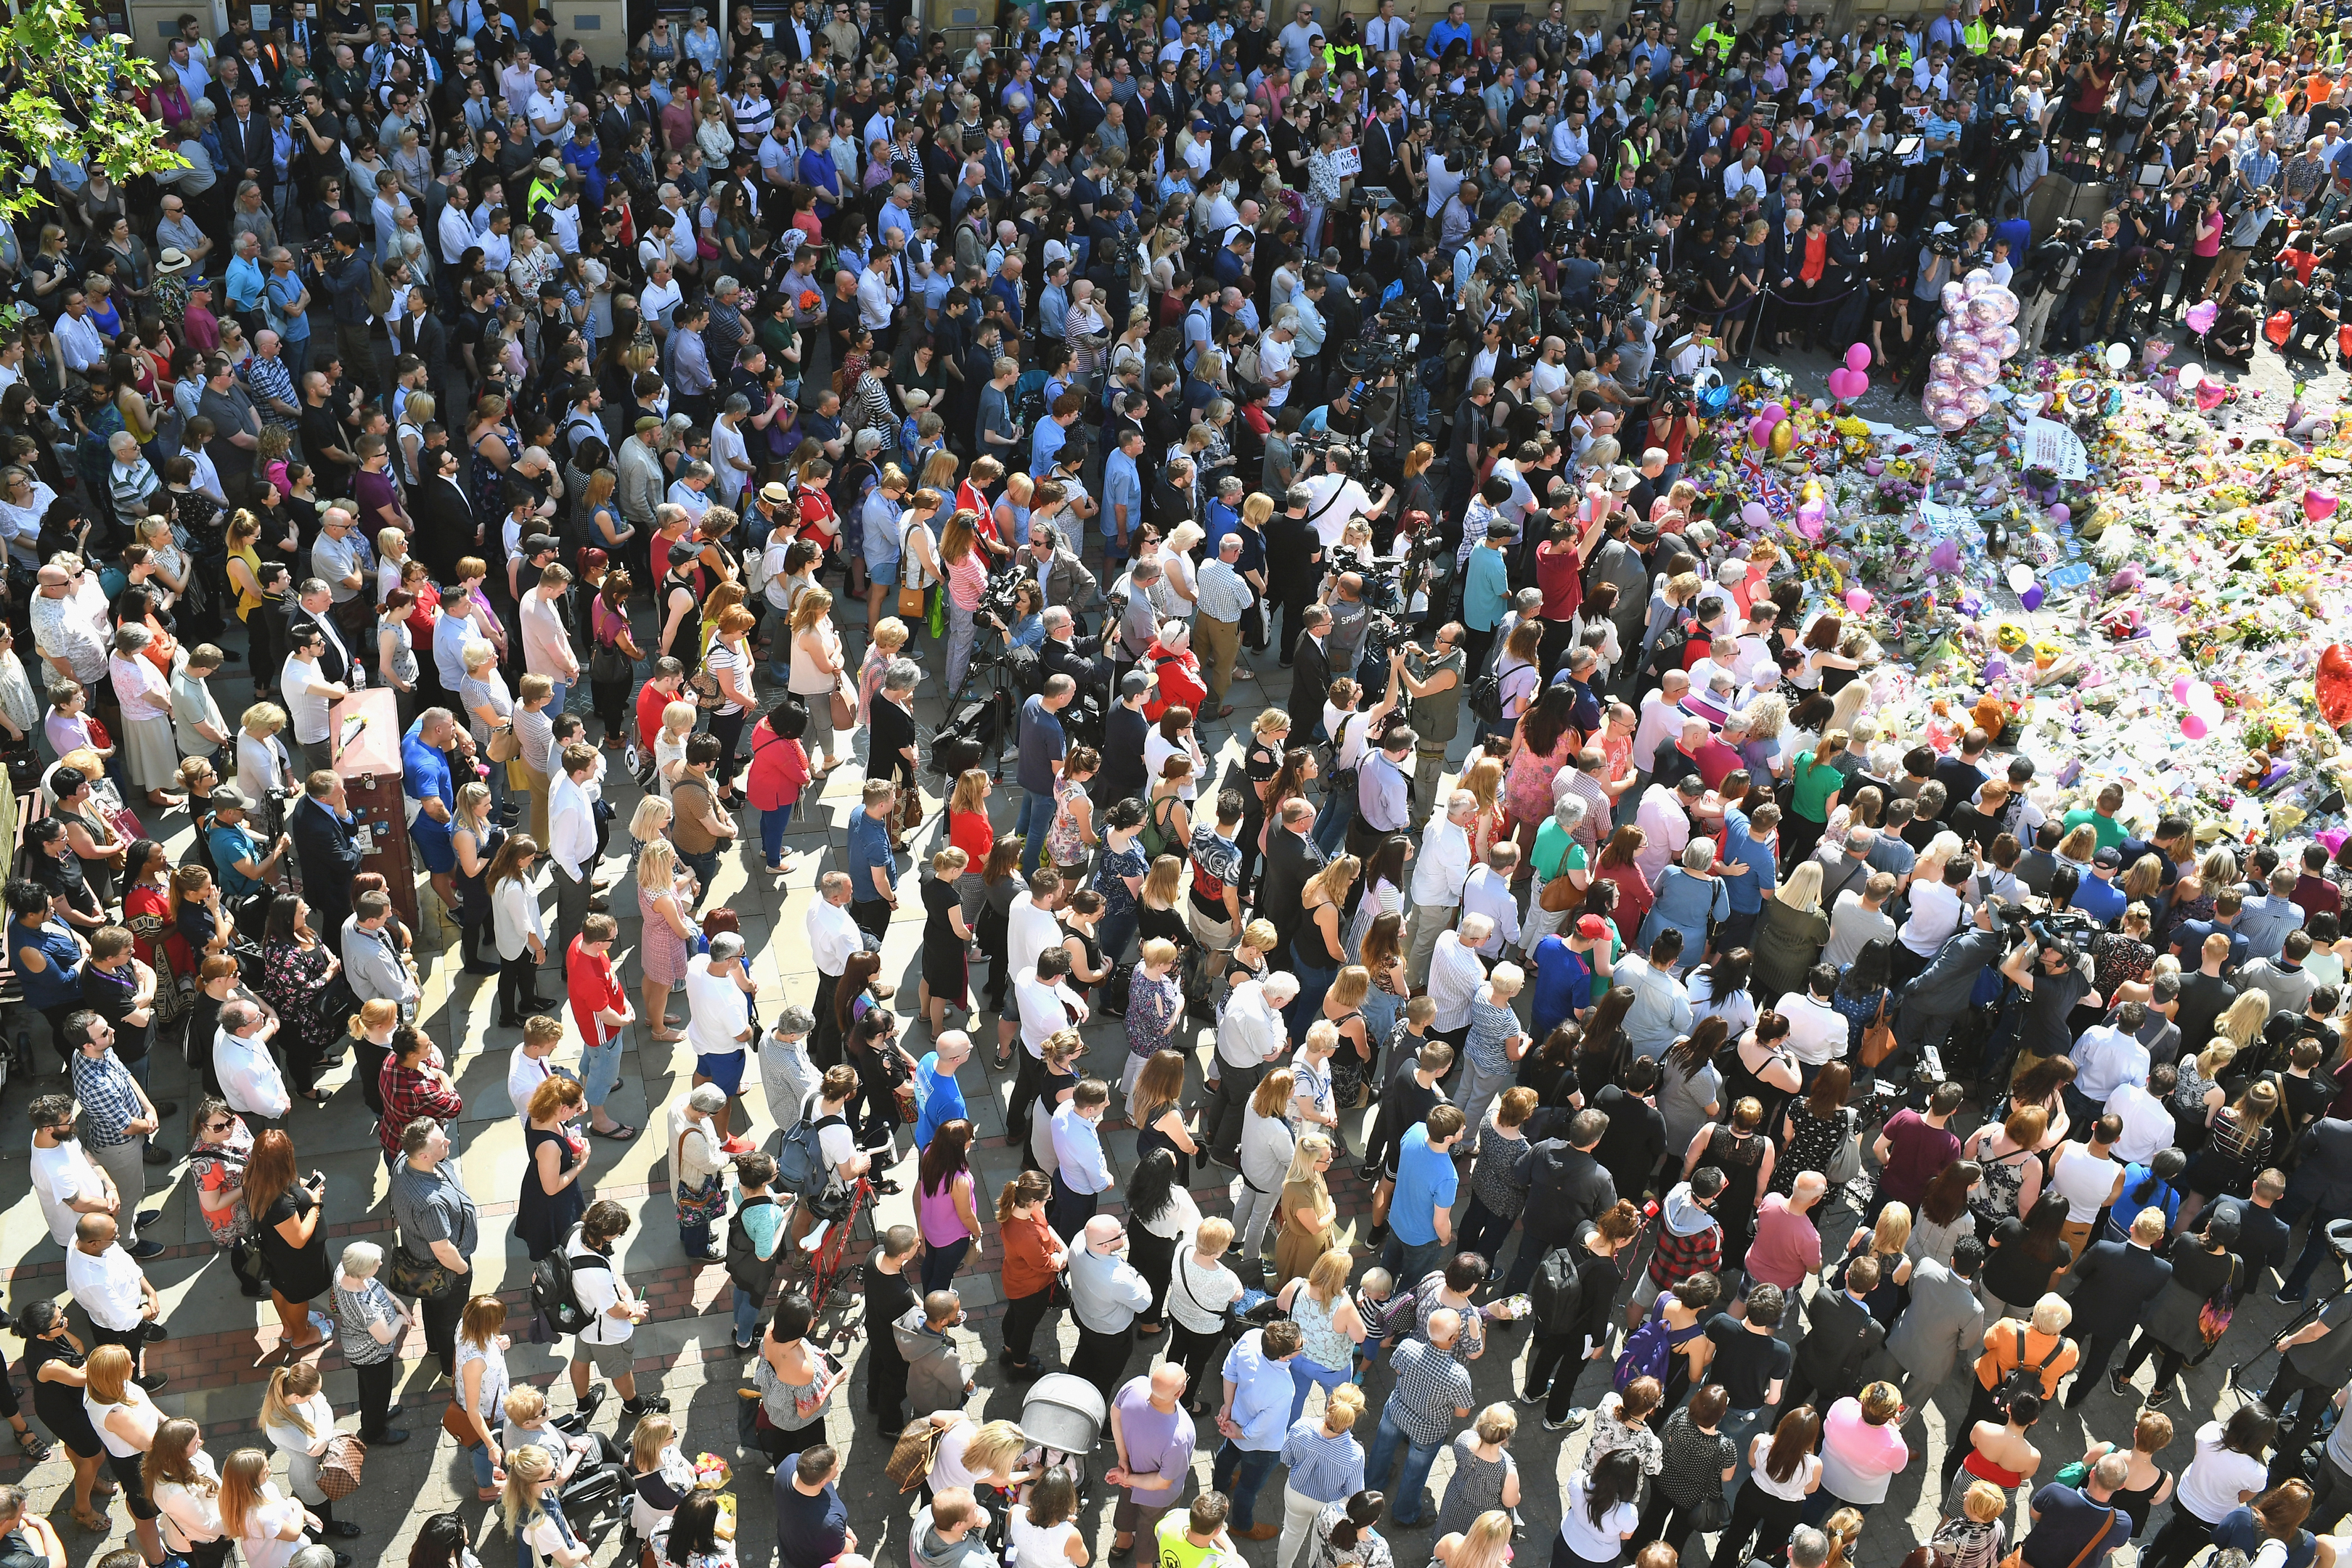 Members of the public in Manchester observe a national minute's silence in remembrance of all those who lost their lives in the Manchester Arena attack.